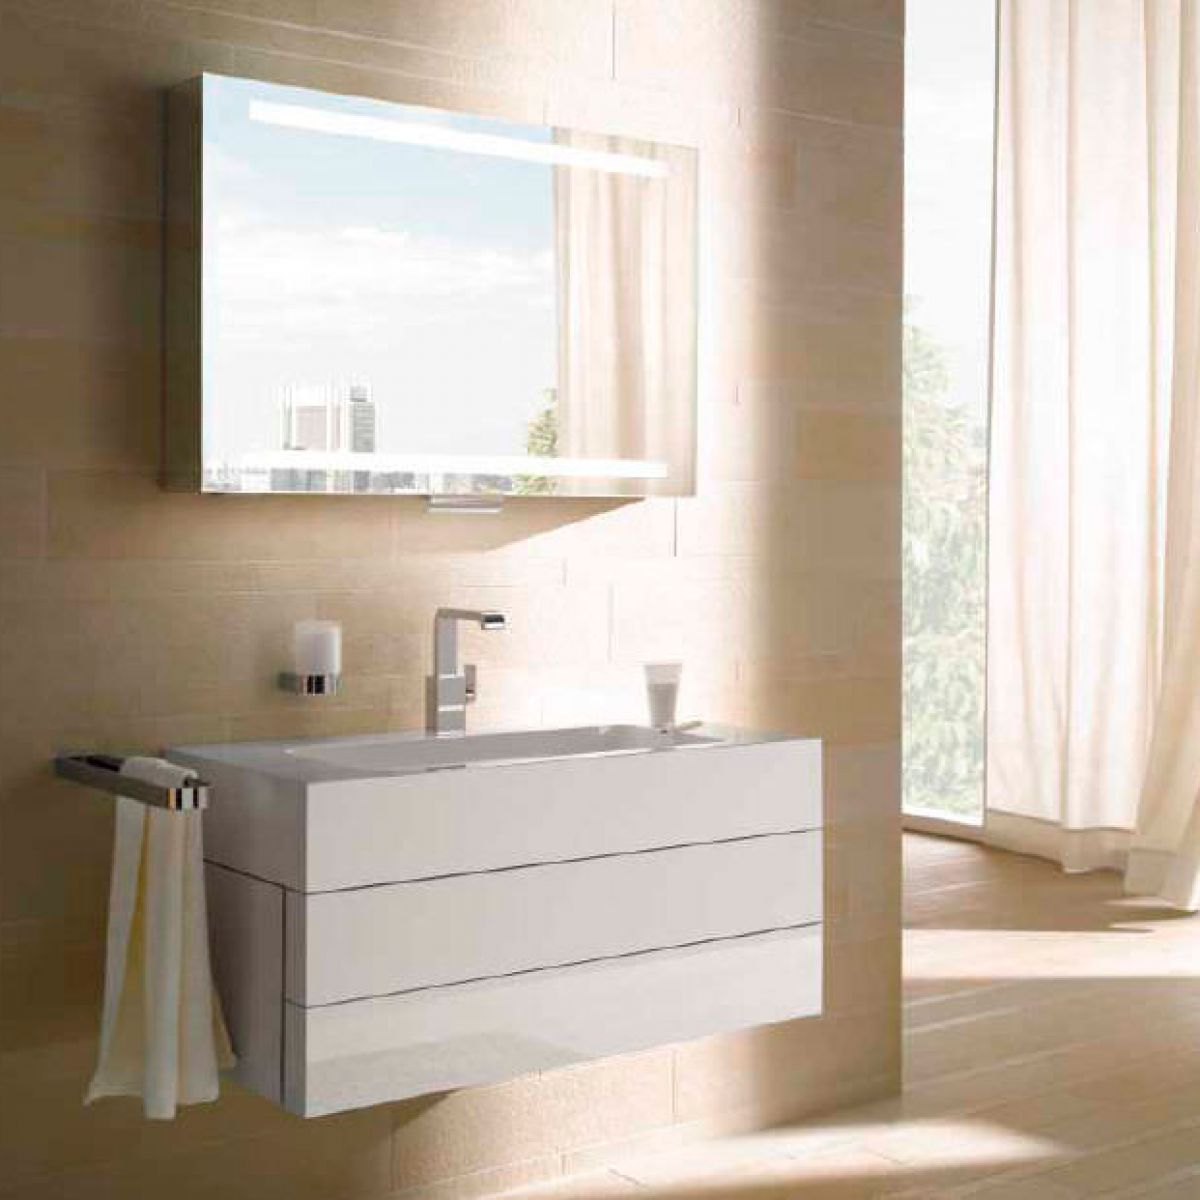 keuco edition 300 mirror cabinet uk bathrooms. Black Bedroom Furniture Sets. Home Design Ideas